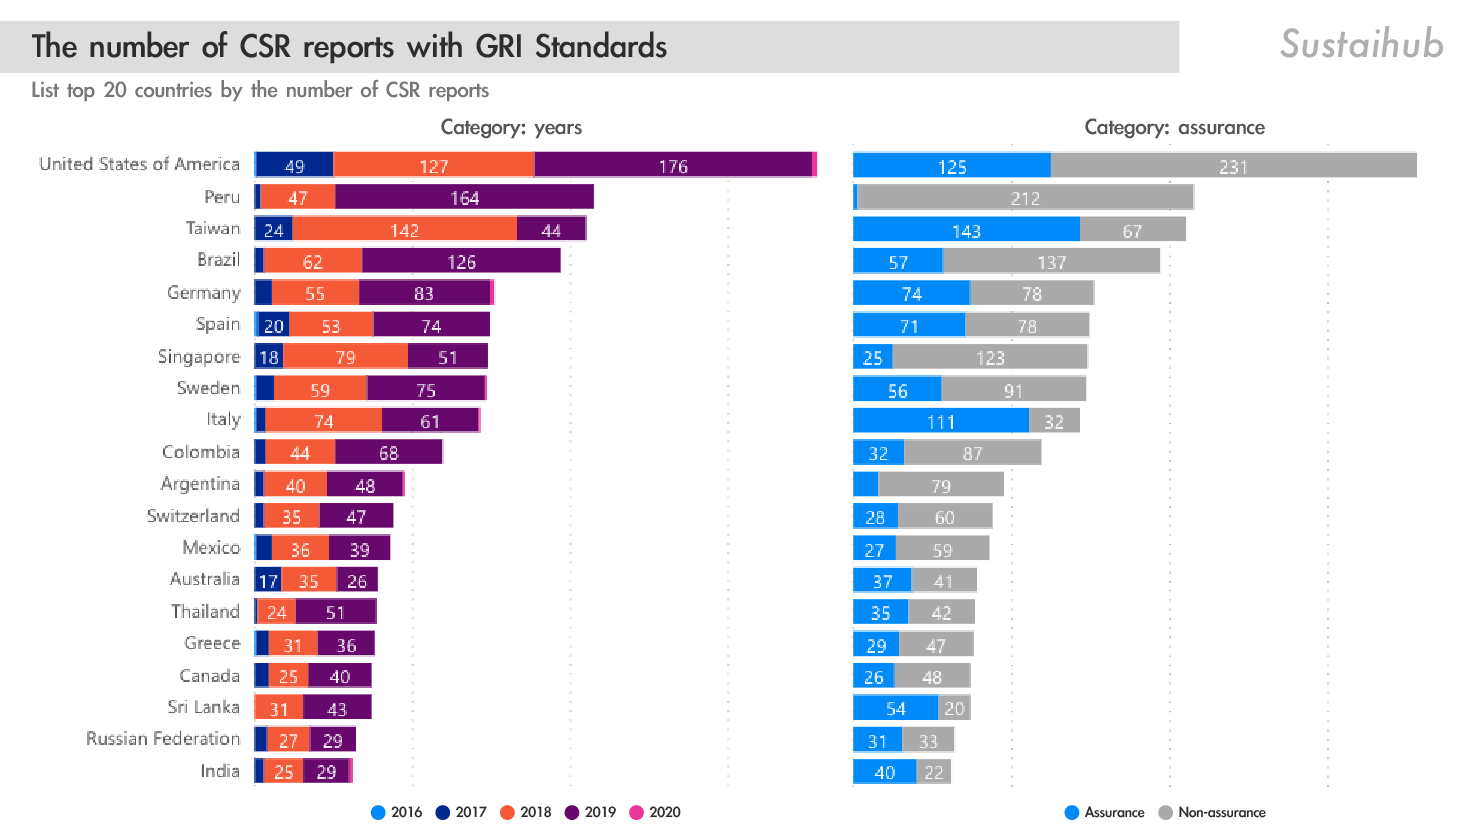 各國採用GRI Standards的報告總數 The number of CSR report with GRI Standards in each nation